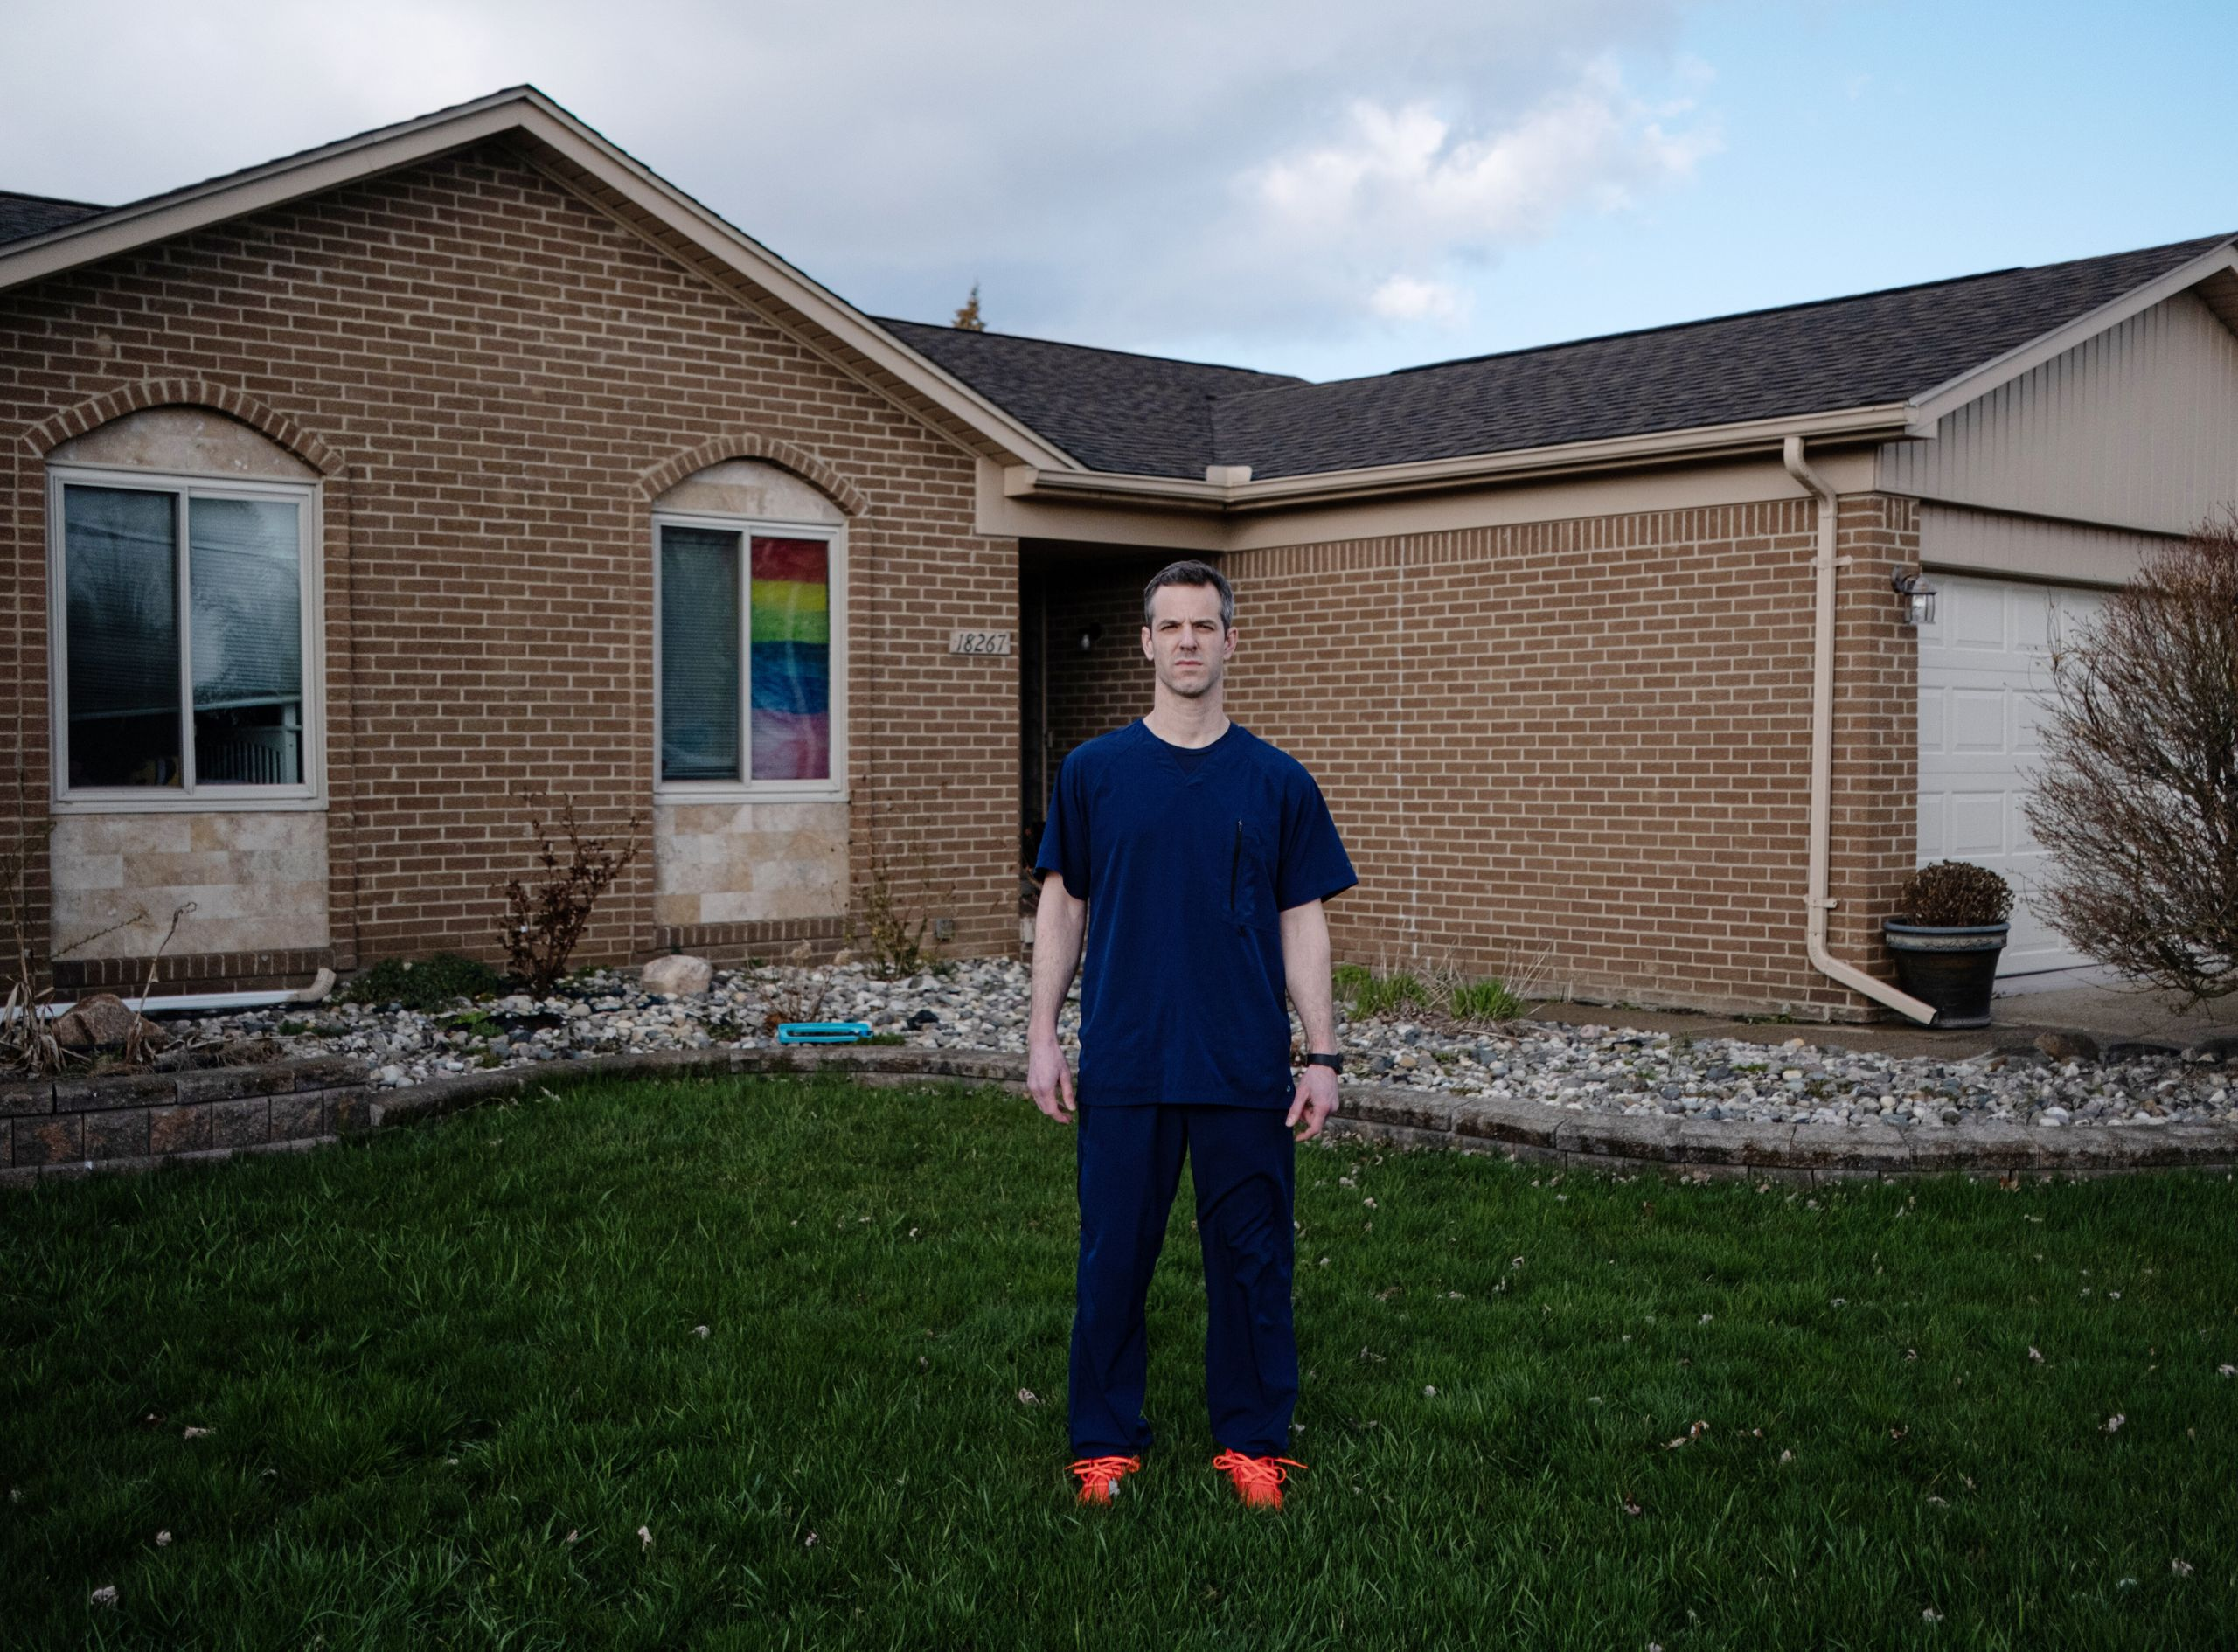 Chris Wasen, here at his Macomb home, was an orthopedic surgery nurse at Beaumont Hospital in metropolitan Detroit before his